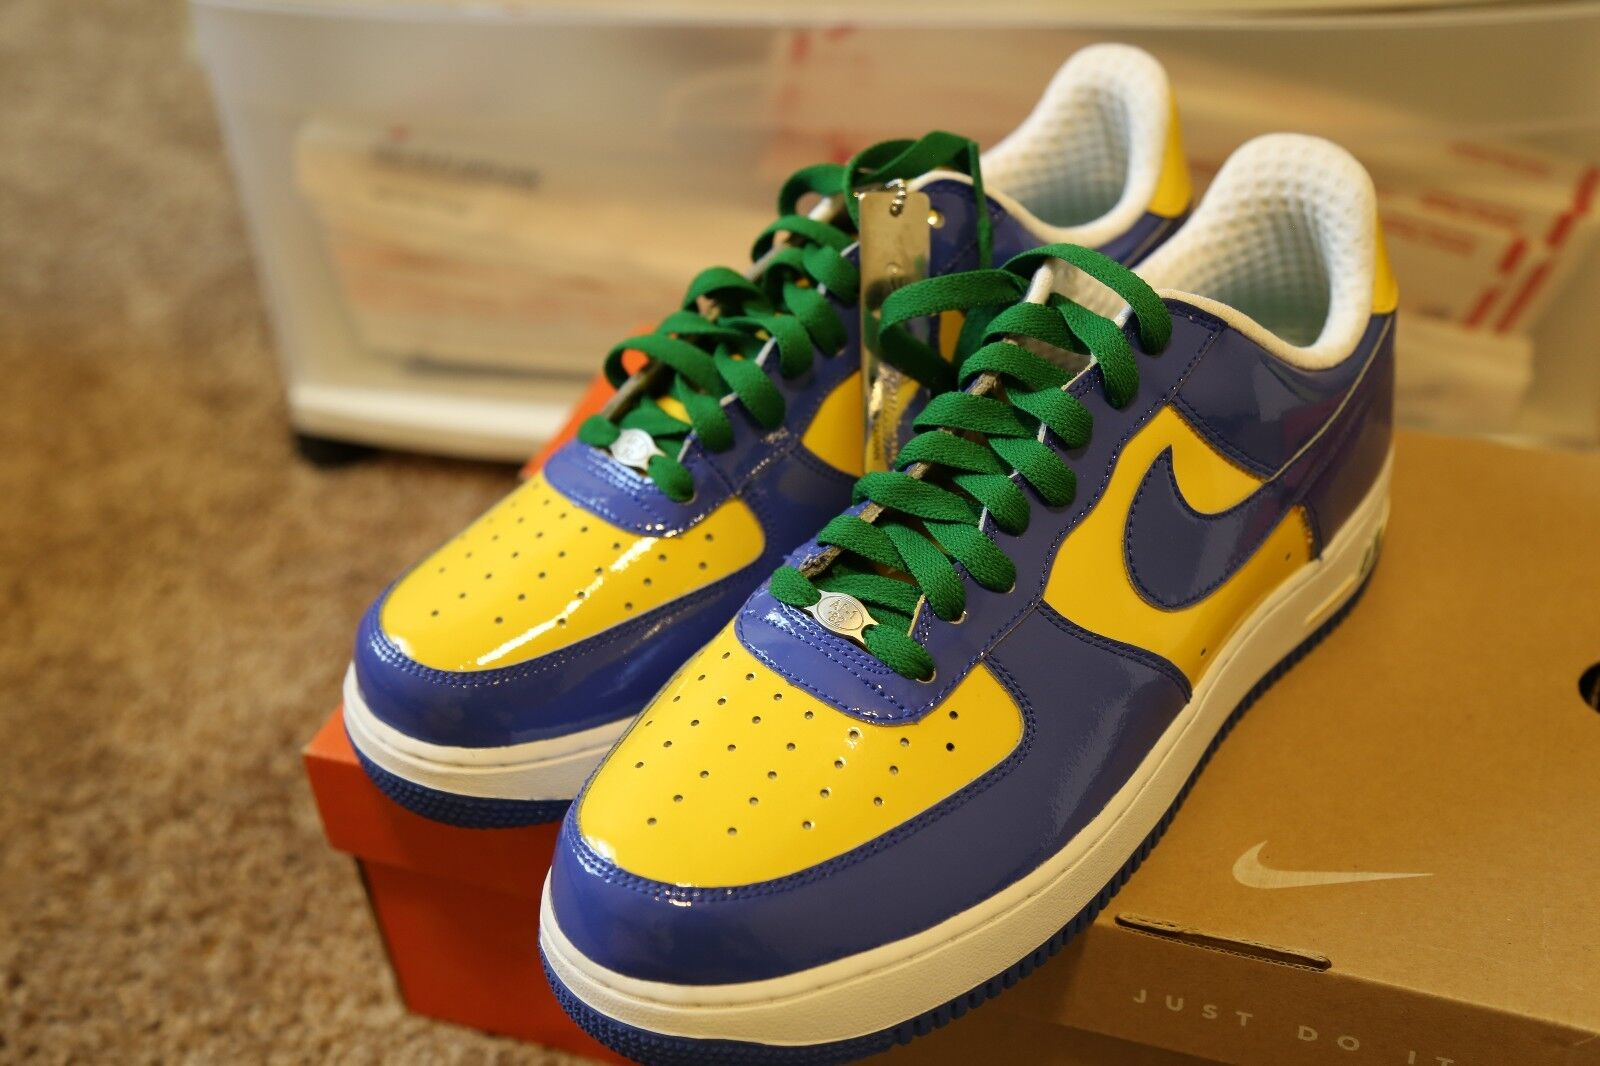 NIKE Air Force One BRAZIL WORLD CUP Authentic Size 10 New DS Authentic CUP  309096 441 PREMIUM 1c82cf